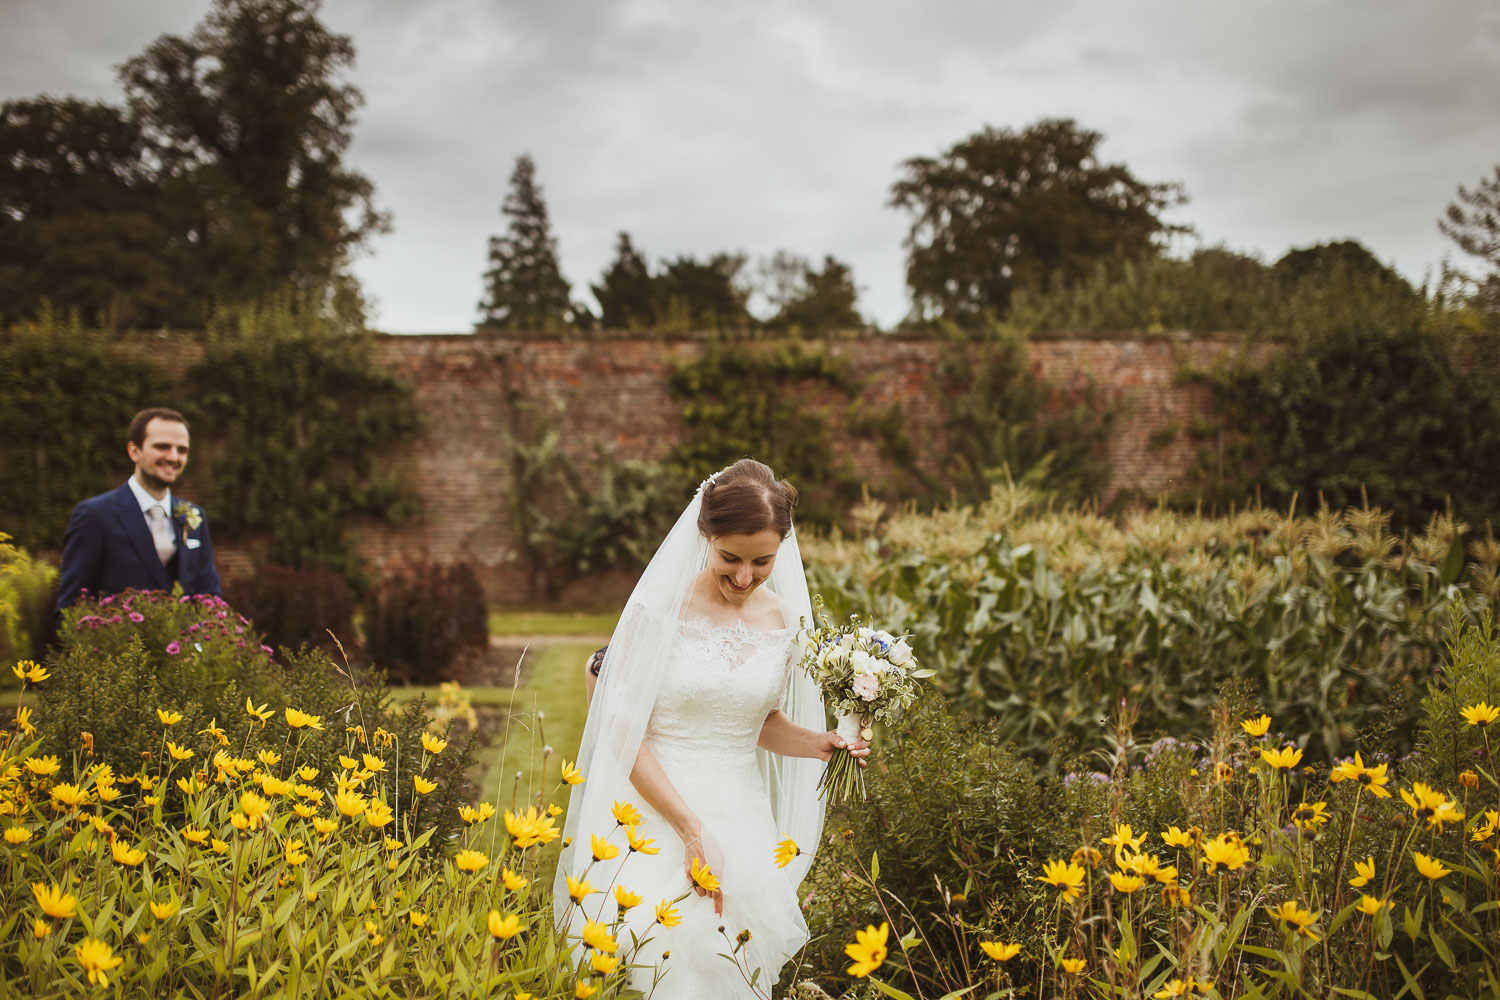 SECRET GARDEN, DALTON ESTATE WEDDINGS